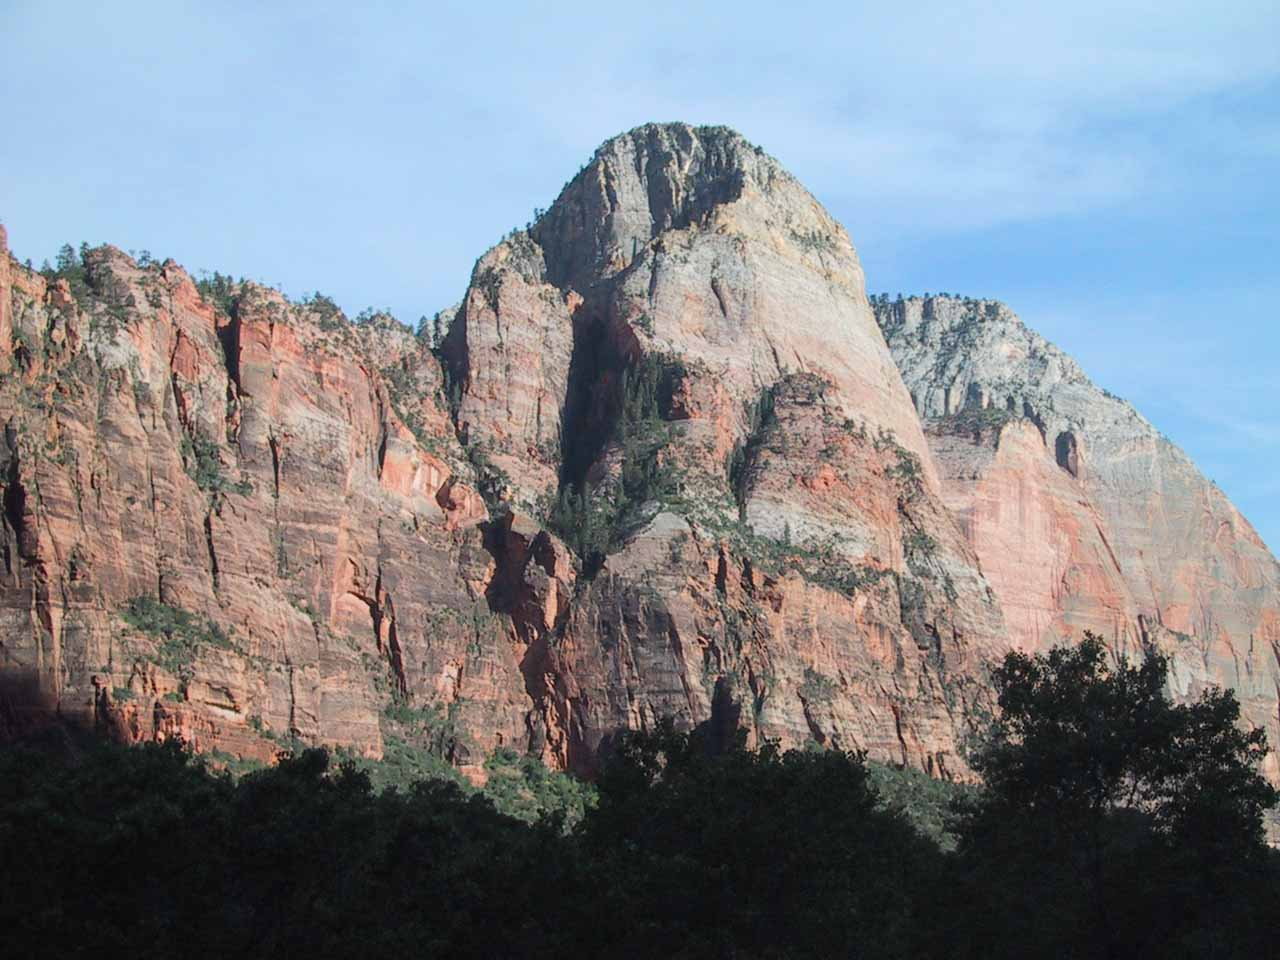 Looking across the canyon at the Watchman from the Emerald Pools that same afternoon in June 2001